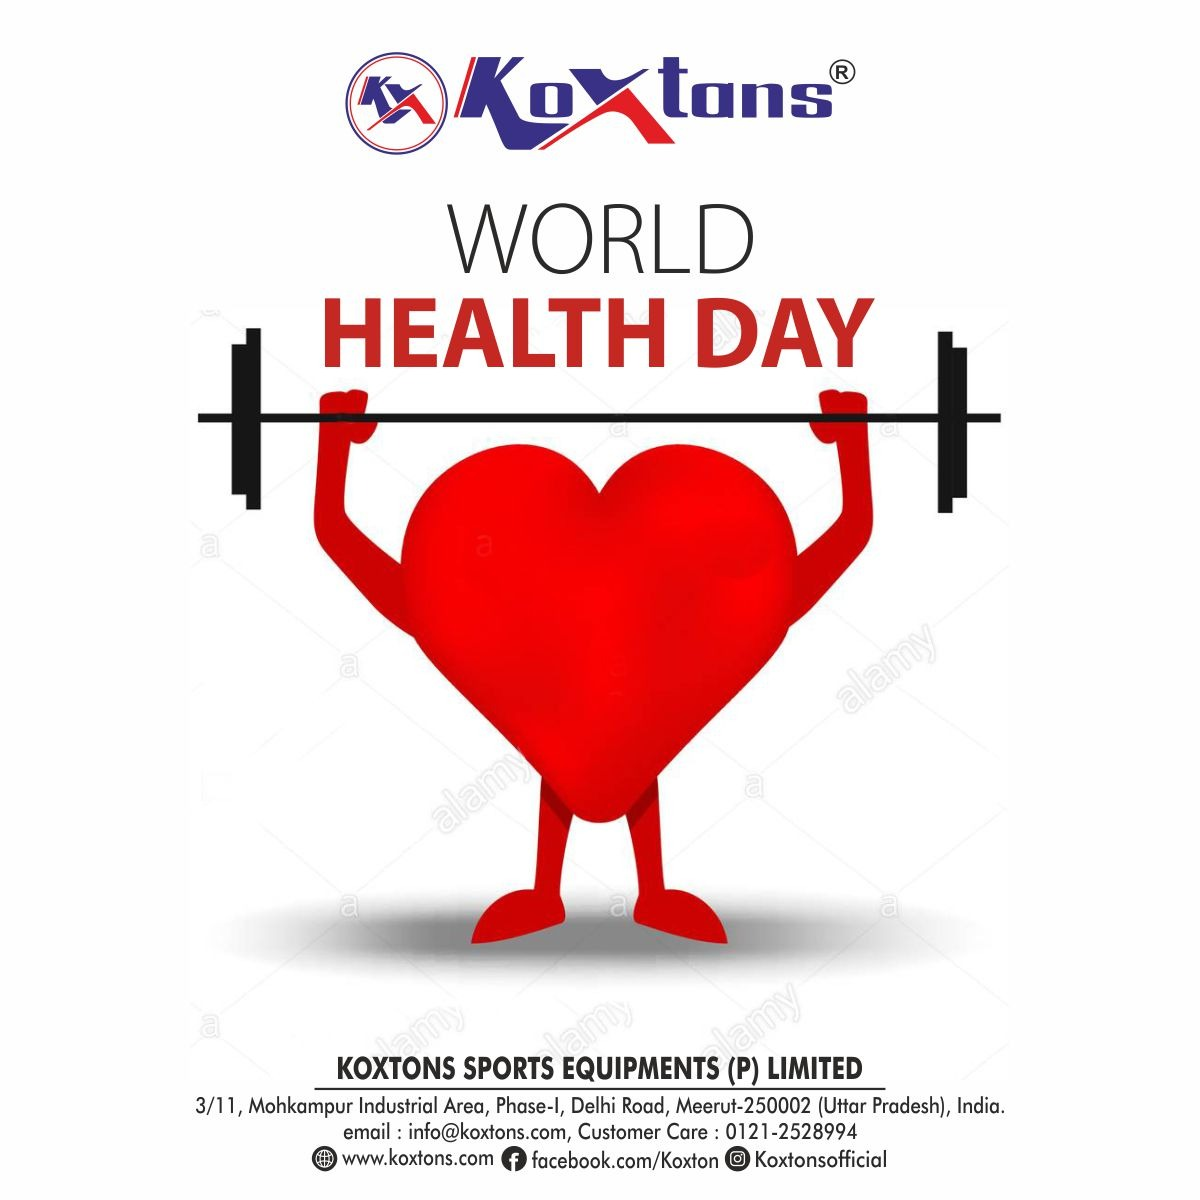 KOXTONS SPORTS wishes you all Happy and Healthy life on World Health Day.  🙏 Get Safety Precautions from COVID-19. Stay Home, Stay Safe. #worldhealthday #health #fitness #healthylifestyle #motivation #wellness #workout #lifestyle #nutrition #exercise #healthyfood #selfcare https://t.co/TjpM48kT5W